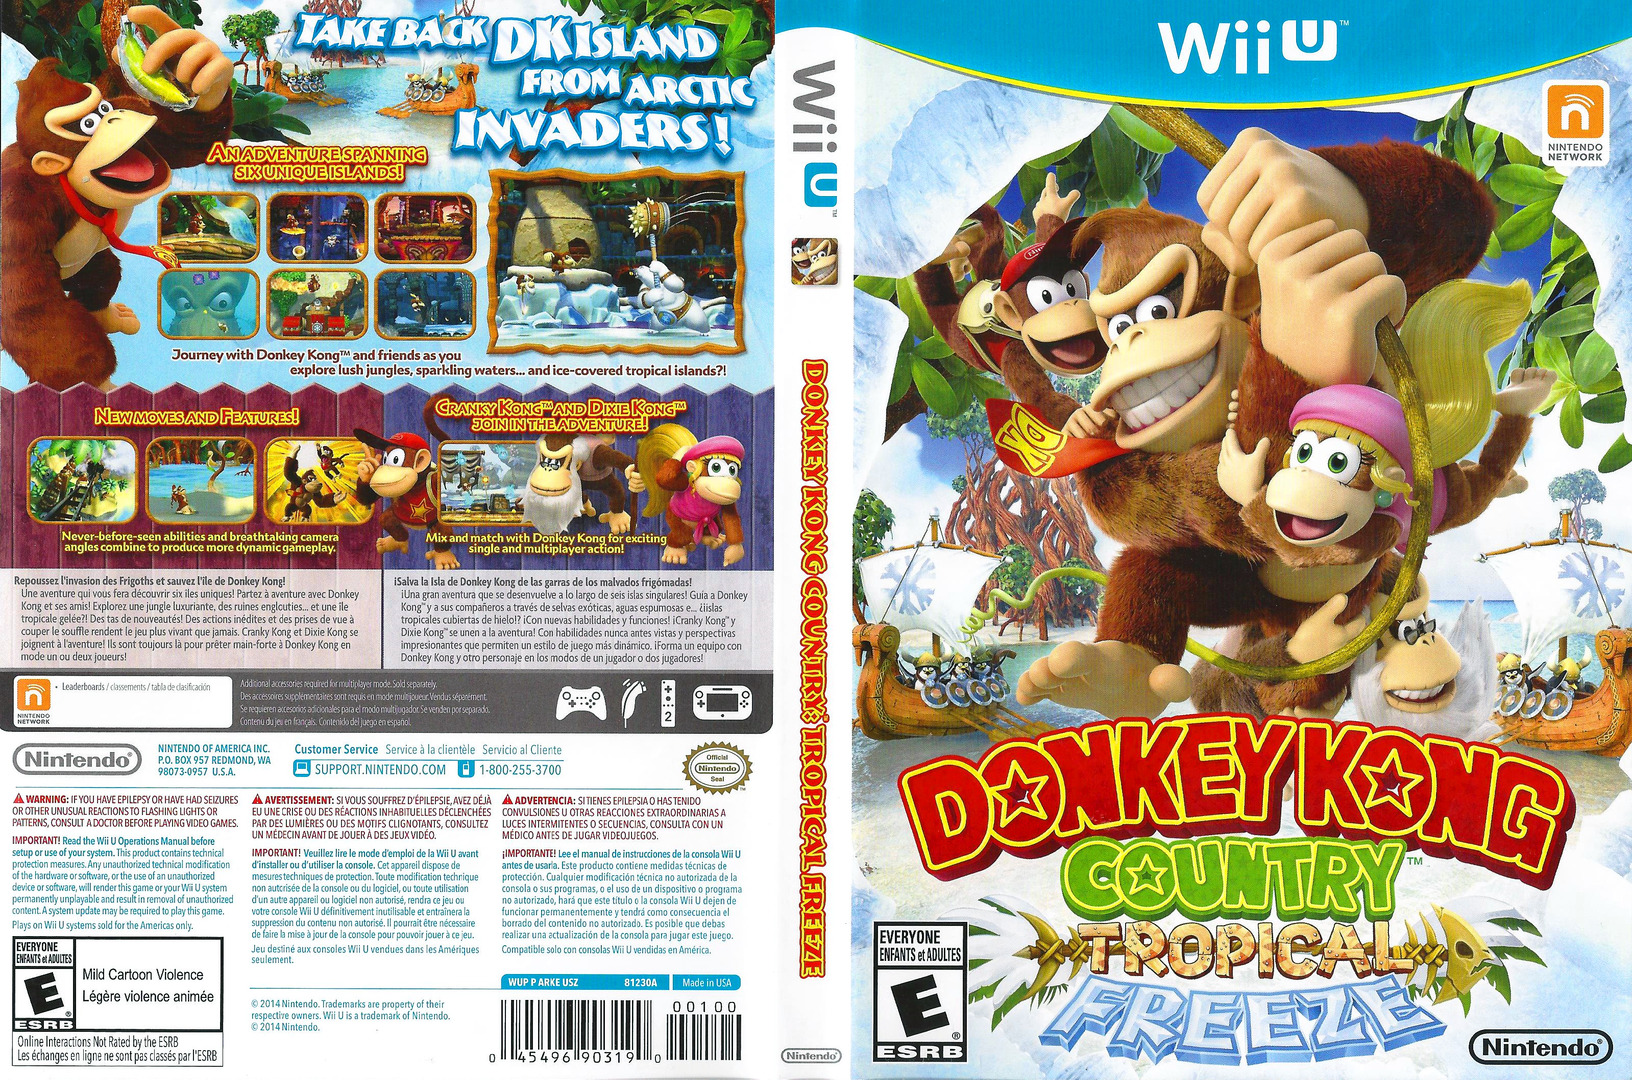 ARKE01 - Donkey Kong Country: Tropical Freeze